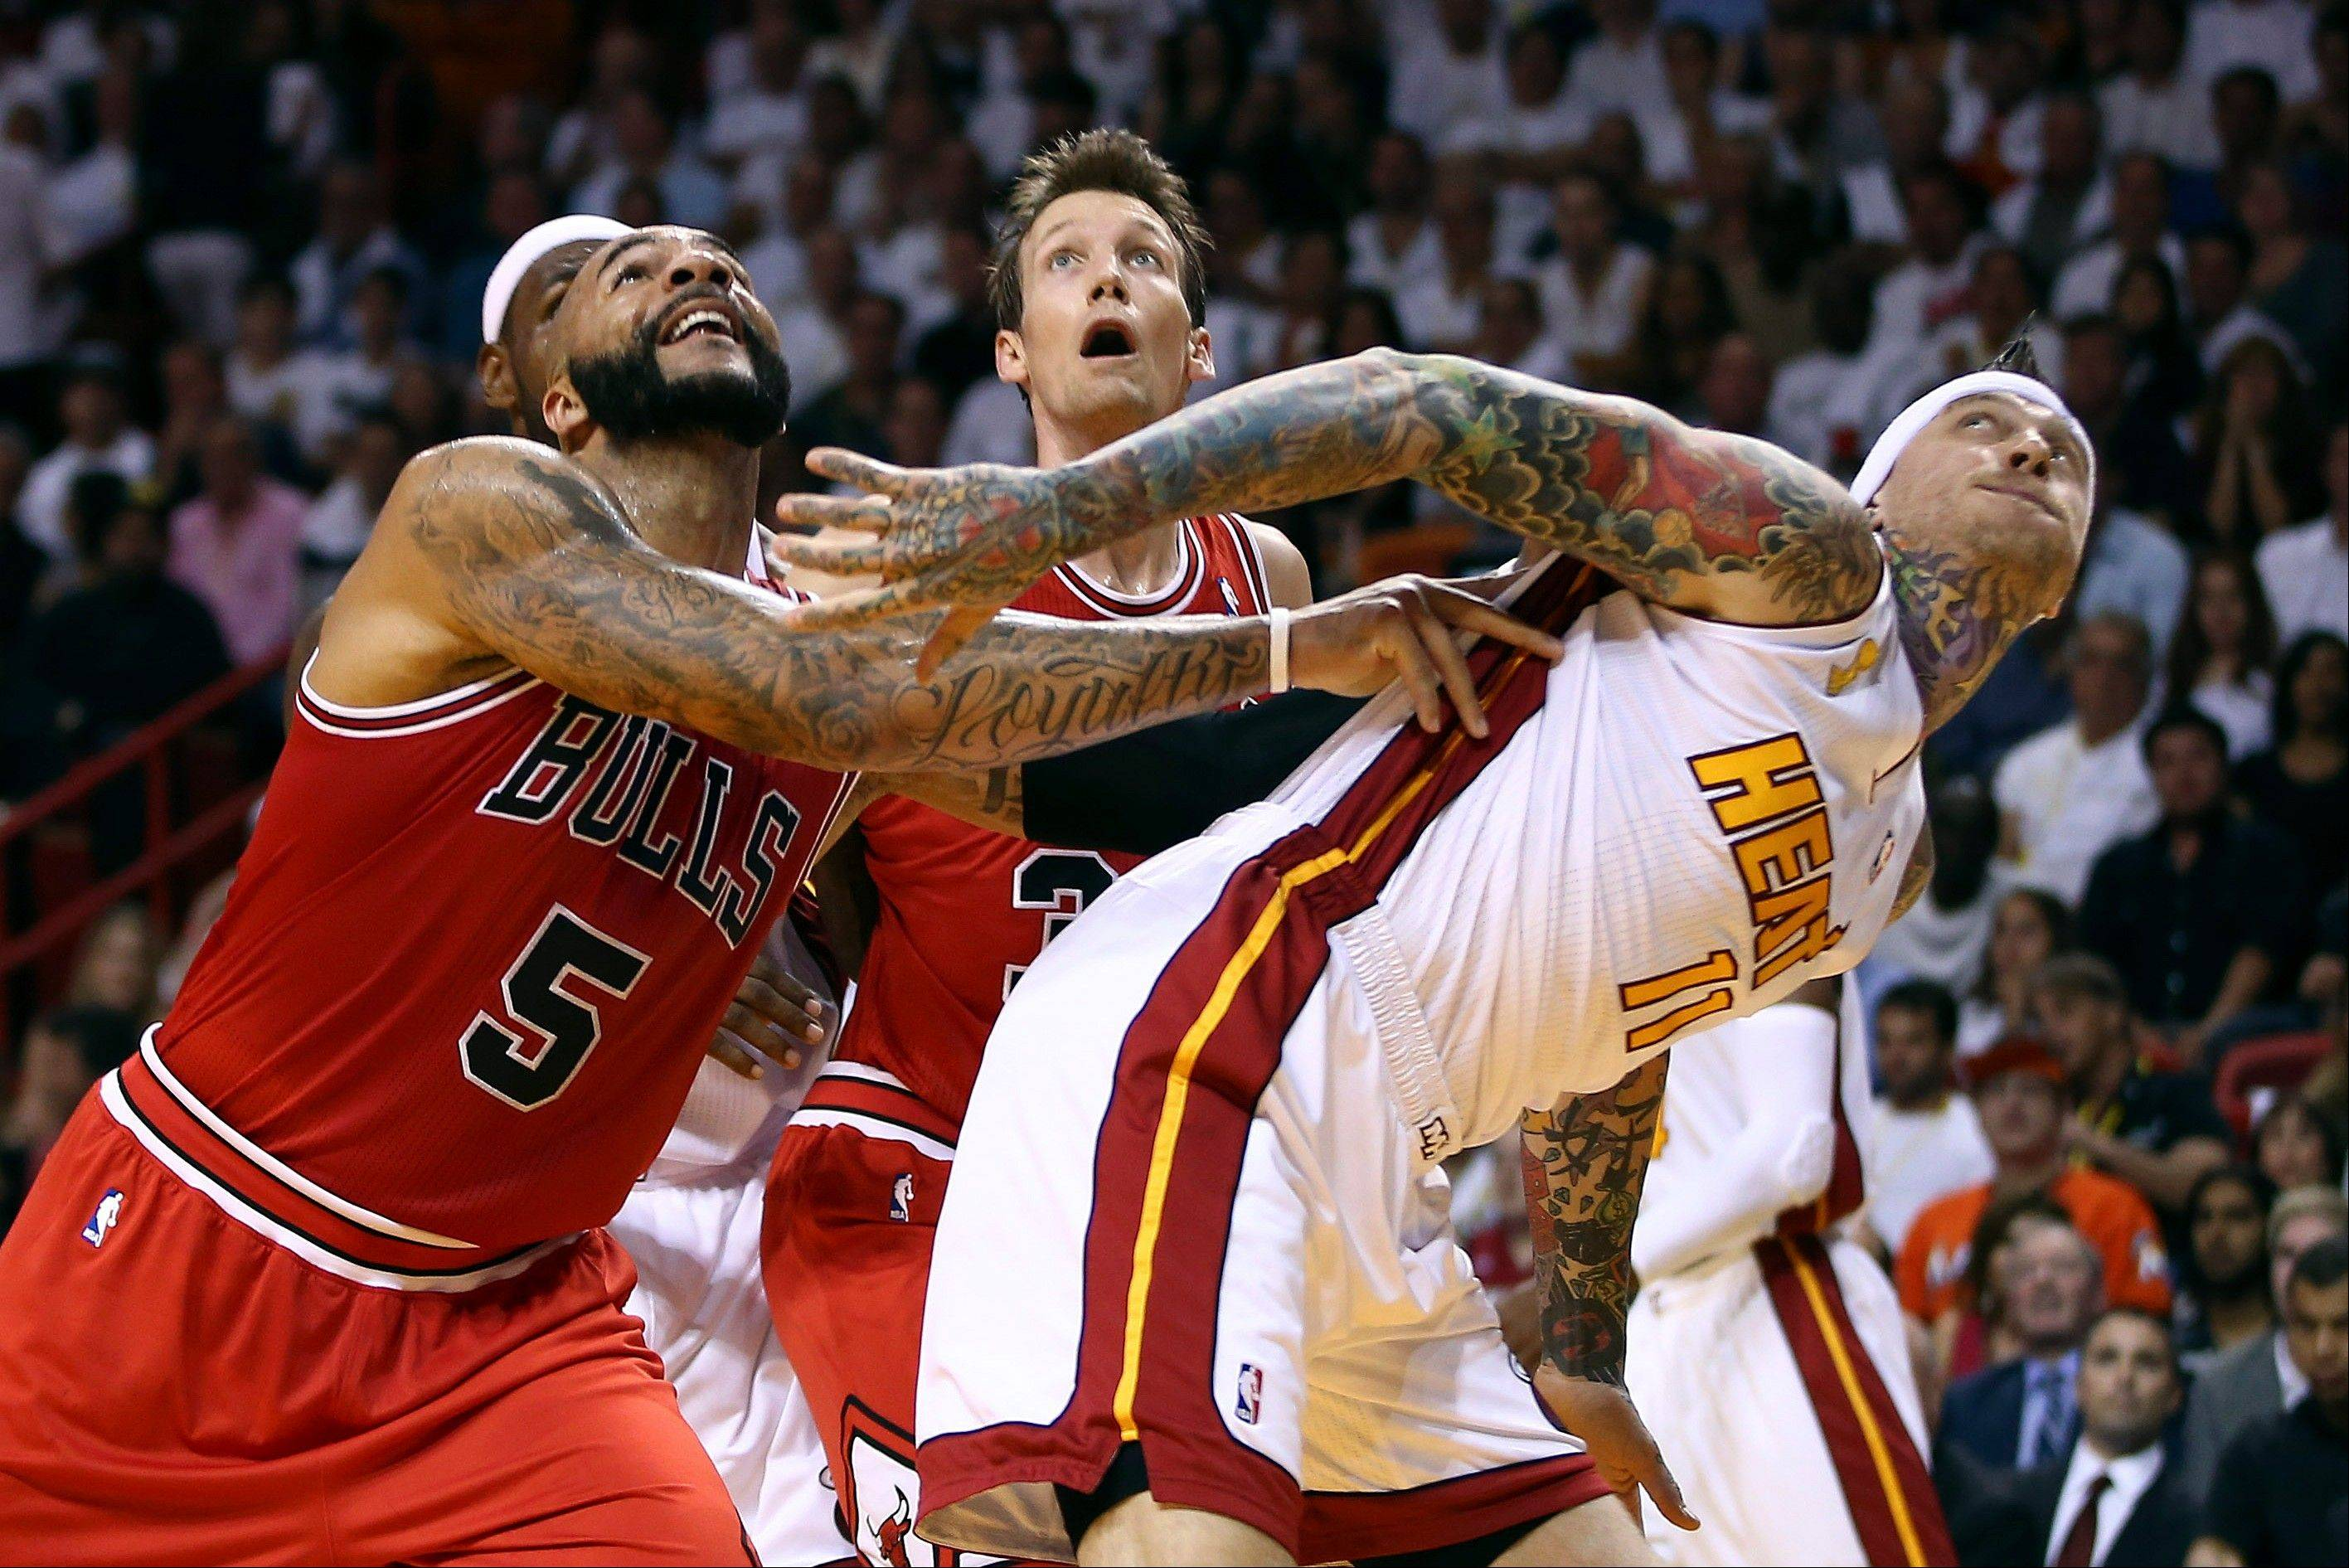 Chicago Bulls Carlos Boozer (5) and Mike Dunleavy battle for a rebound with the Miami Heat's Chris Andersen (11) during the first half of an NBA basketball game in Miami, Tuesday, Oct. 29, 2013.